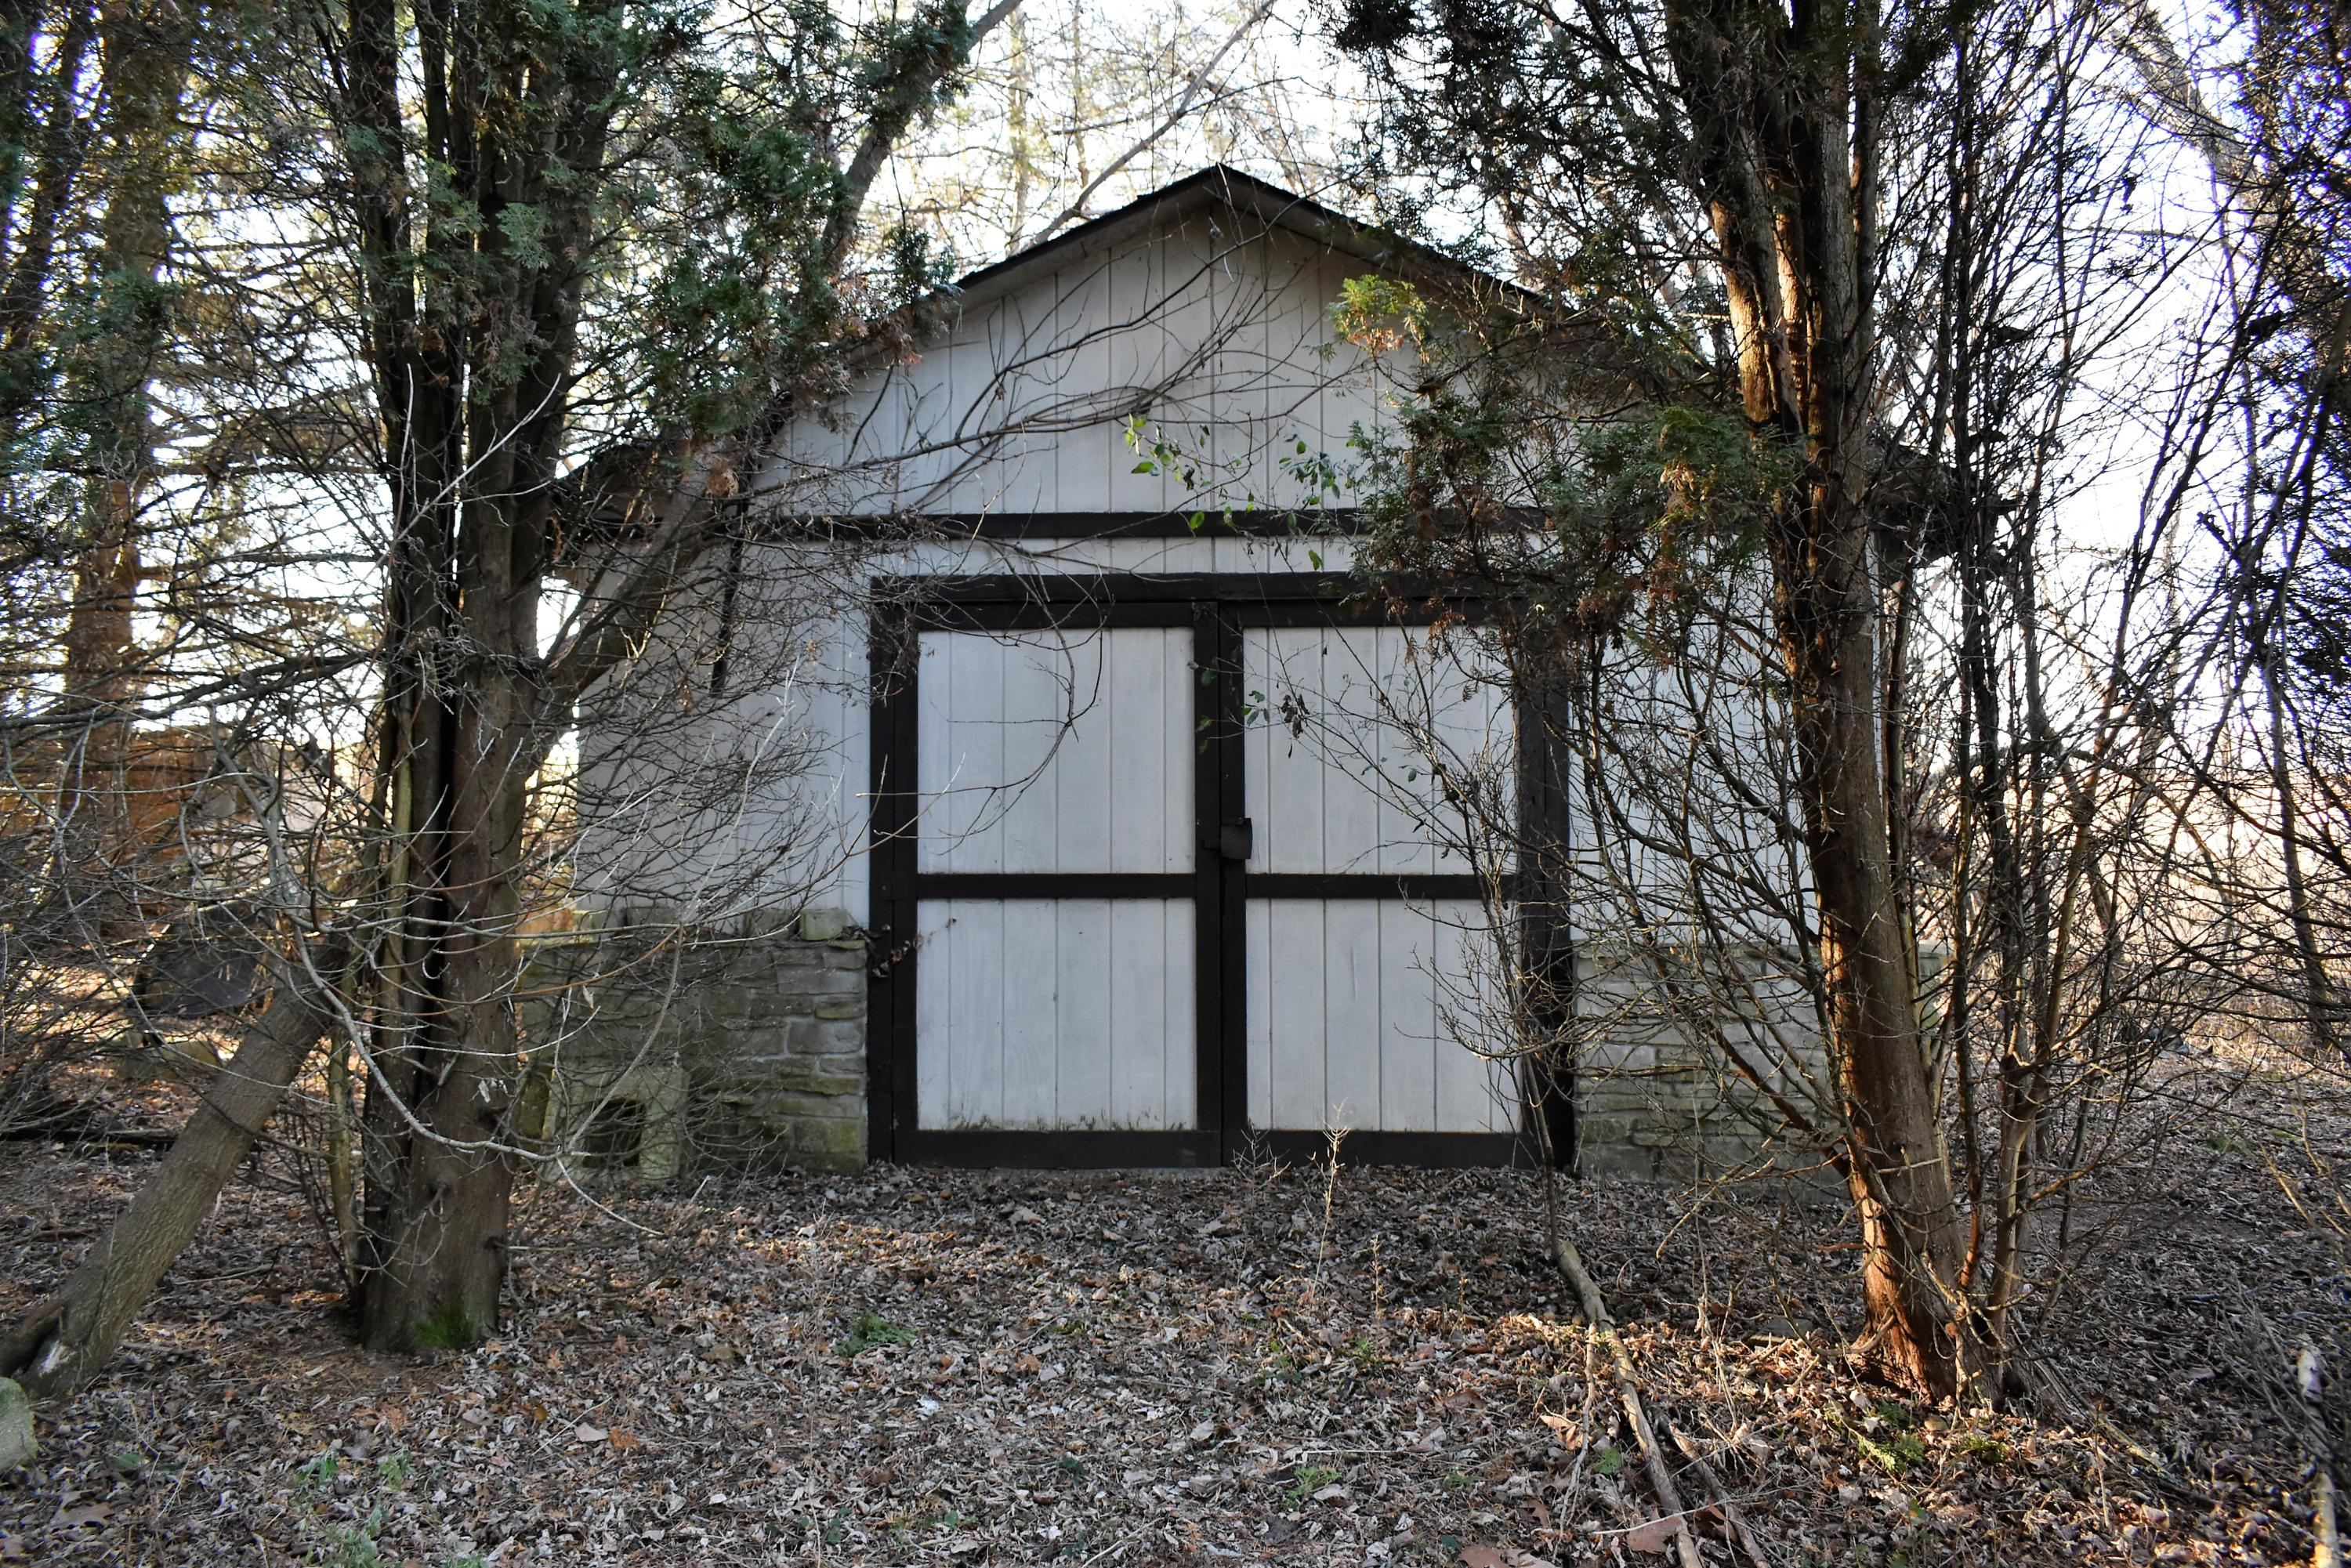 Existing Shed